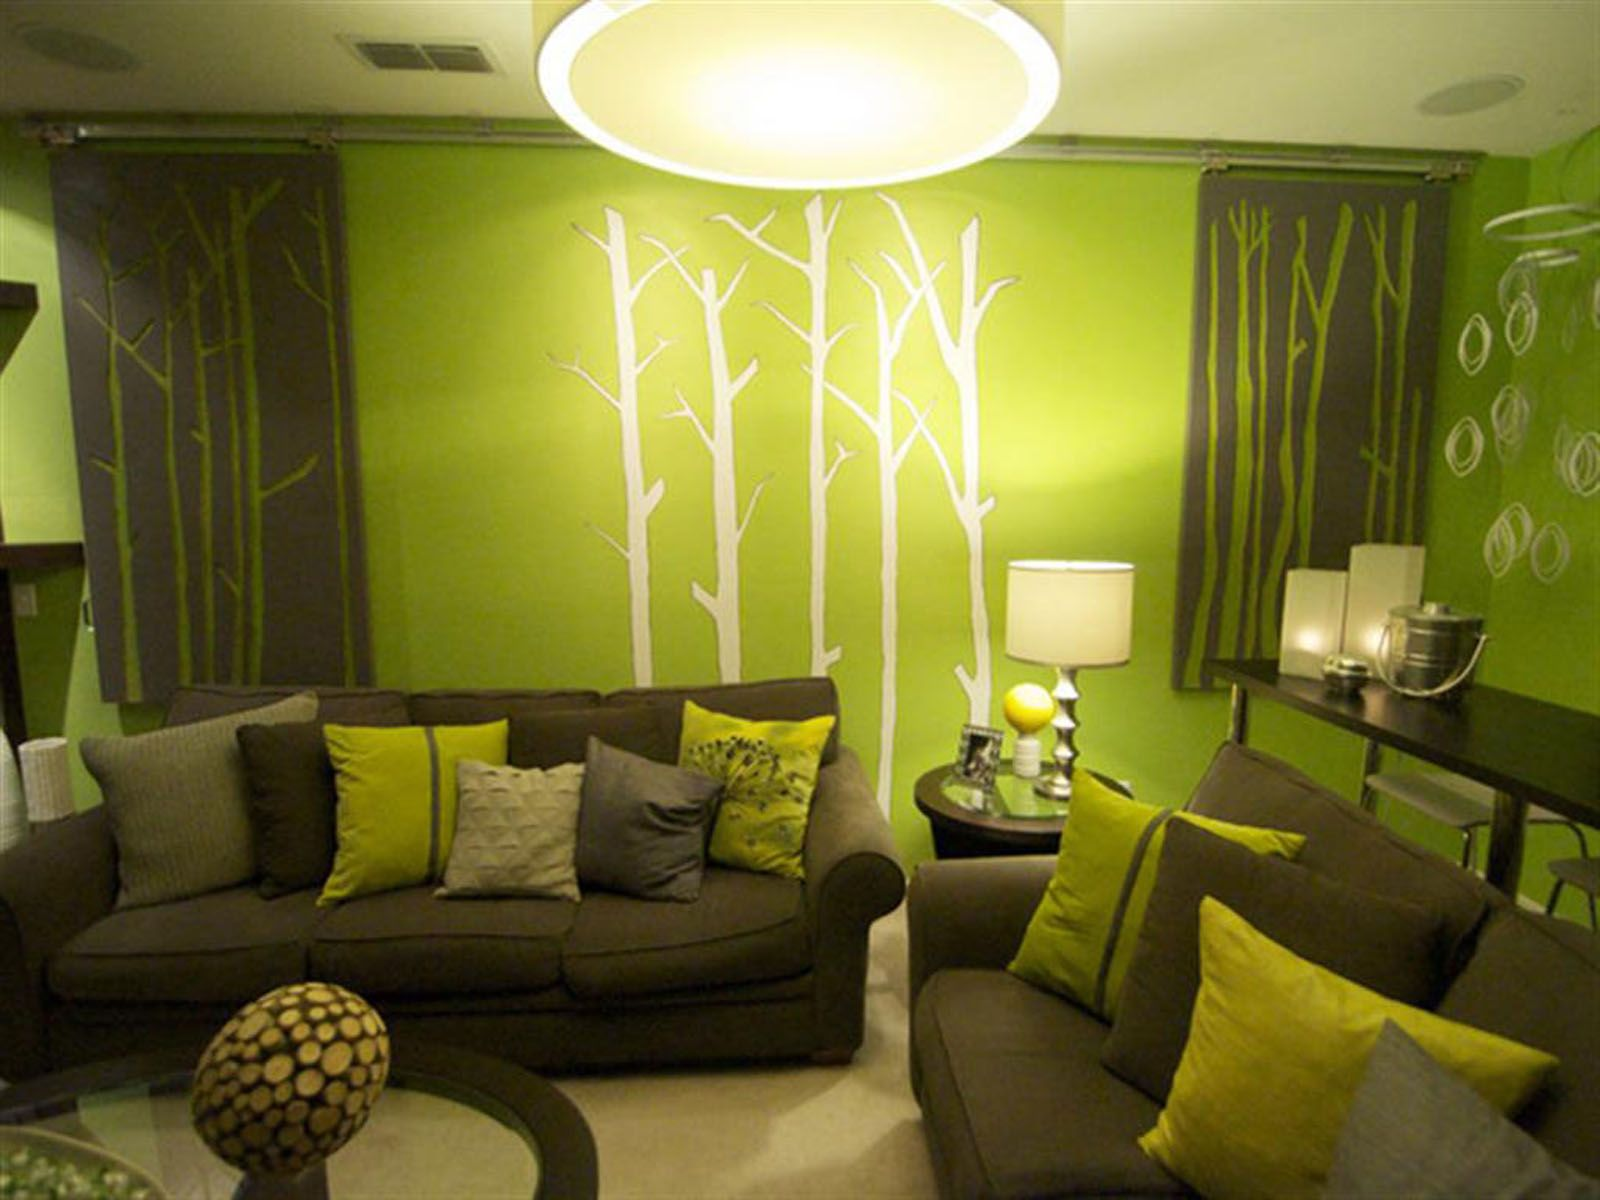 feature-wall-paint-ideas-living-room-e2-80-93-home-decorating_green ...